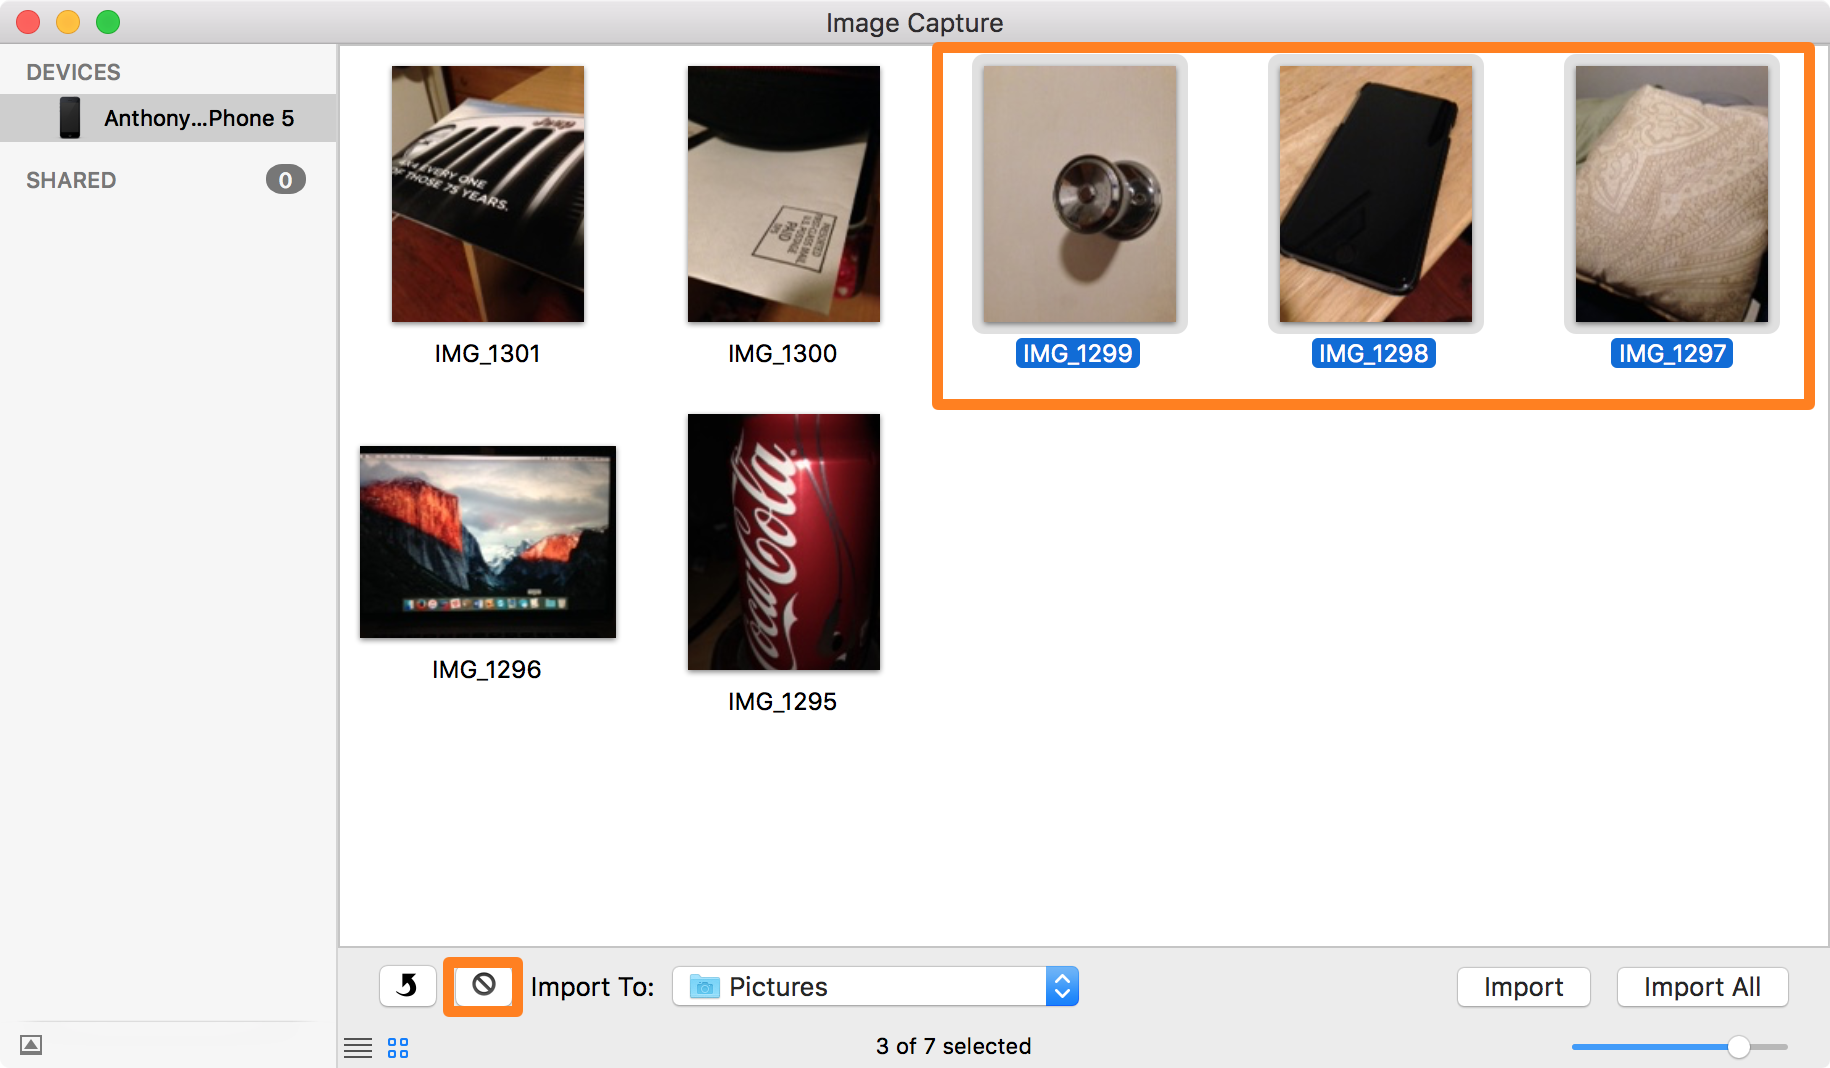 Select photos and delete with Image Capture on Mac